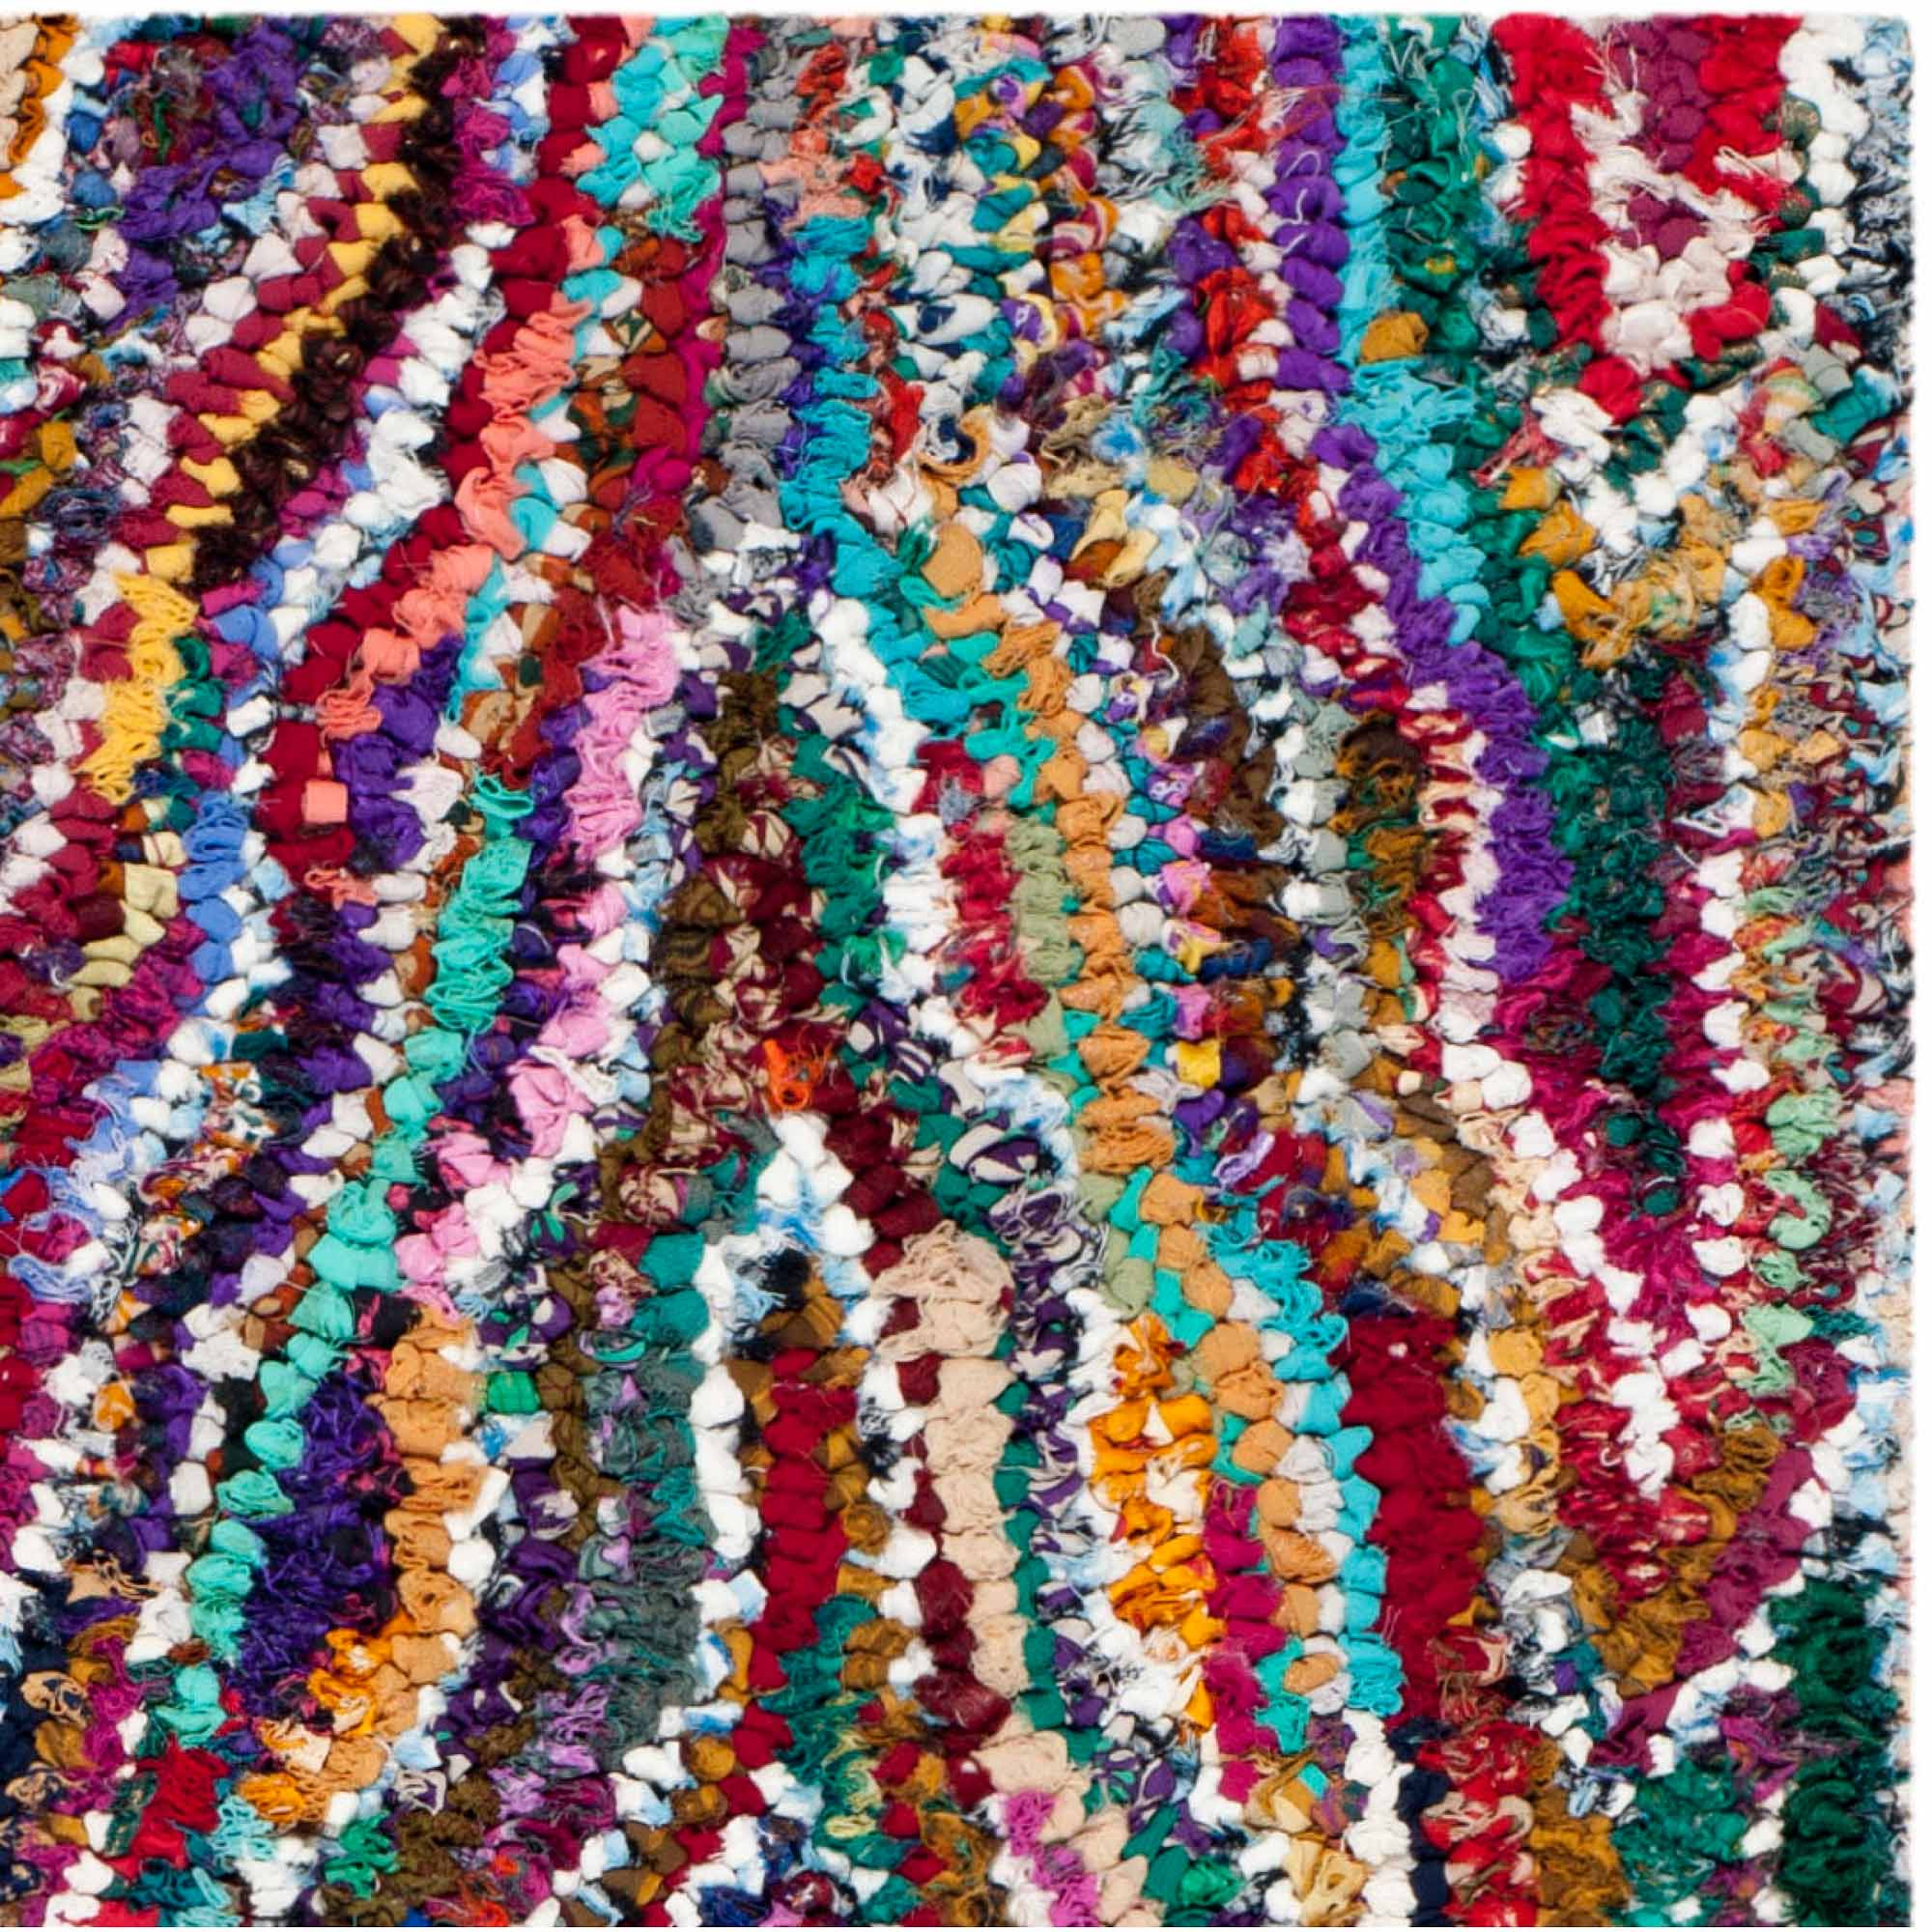 Safavieh Nantucket Amrita Hand-Tufted Cotton Area Rug, Multi-Colored